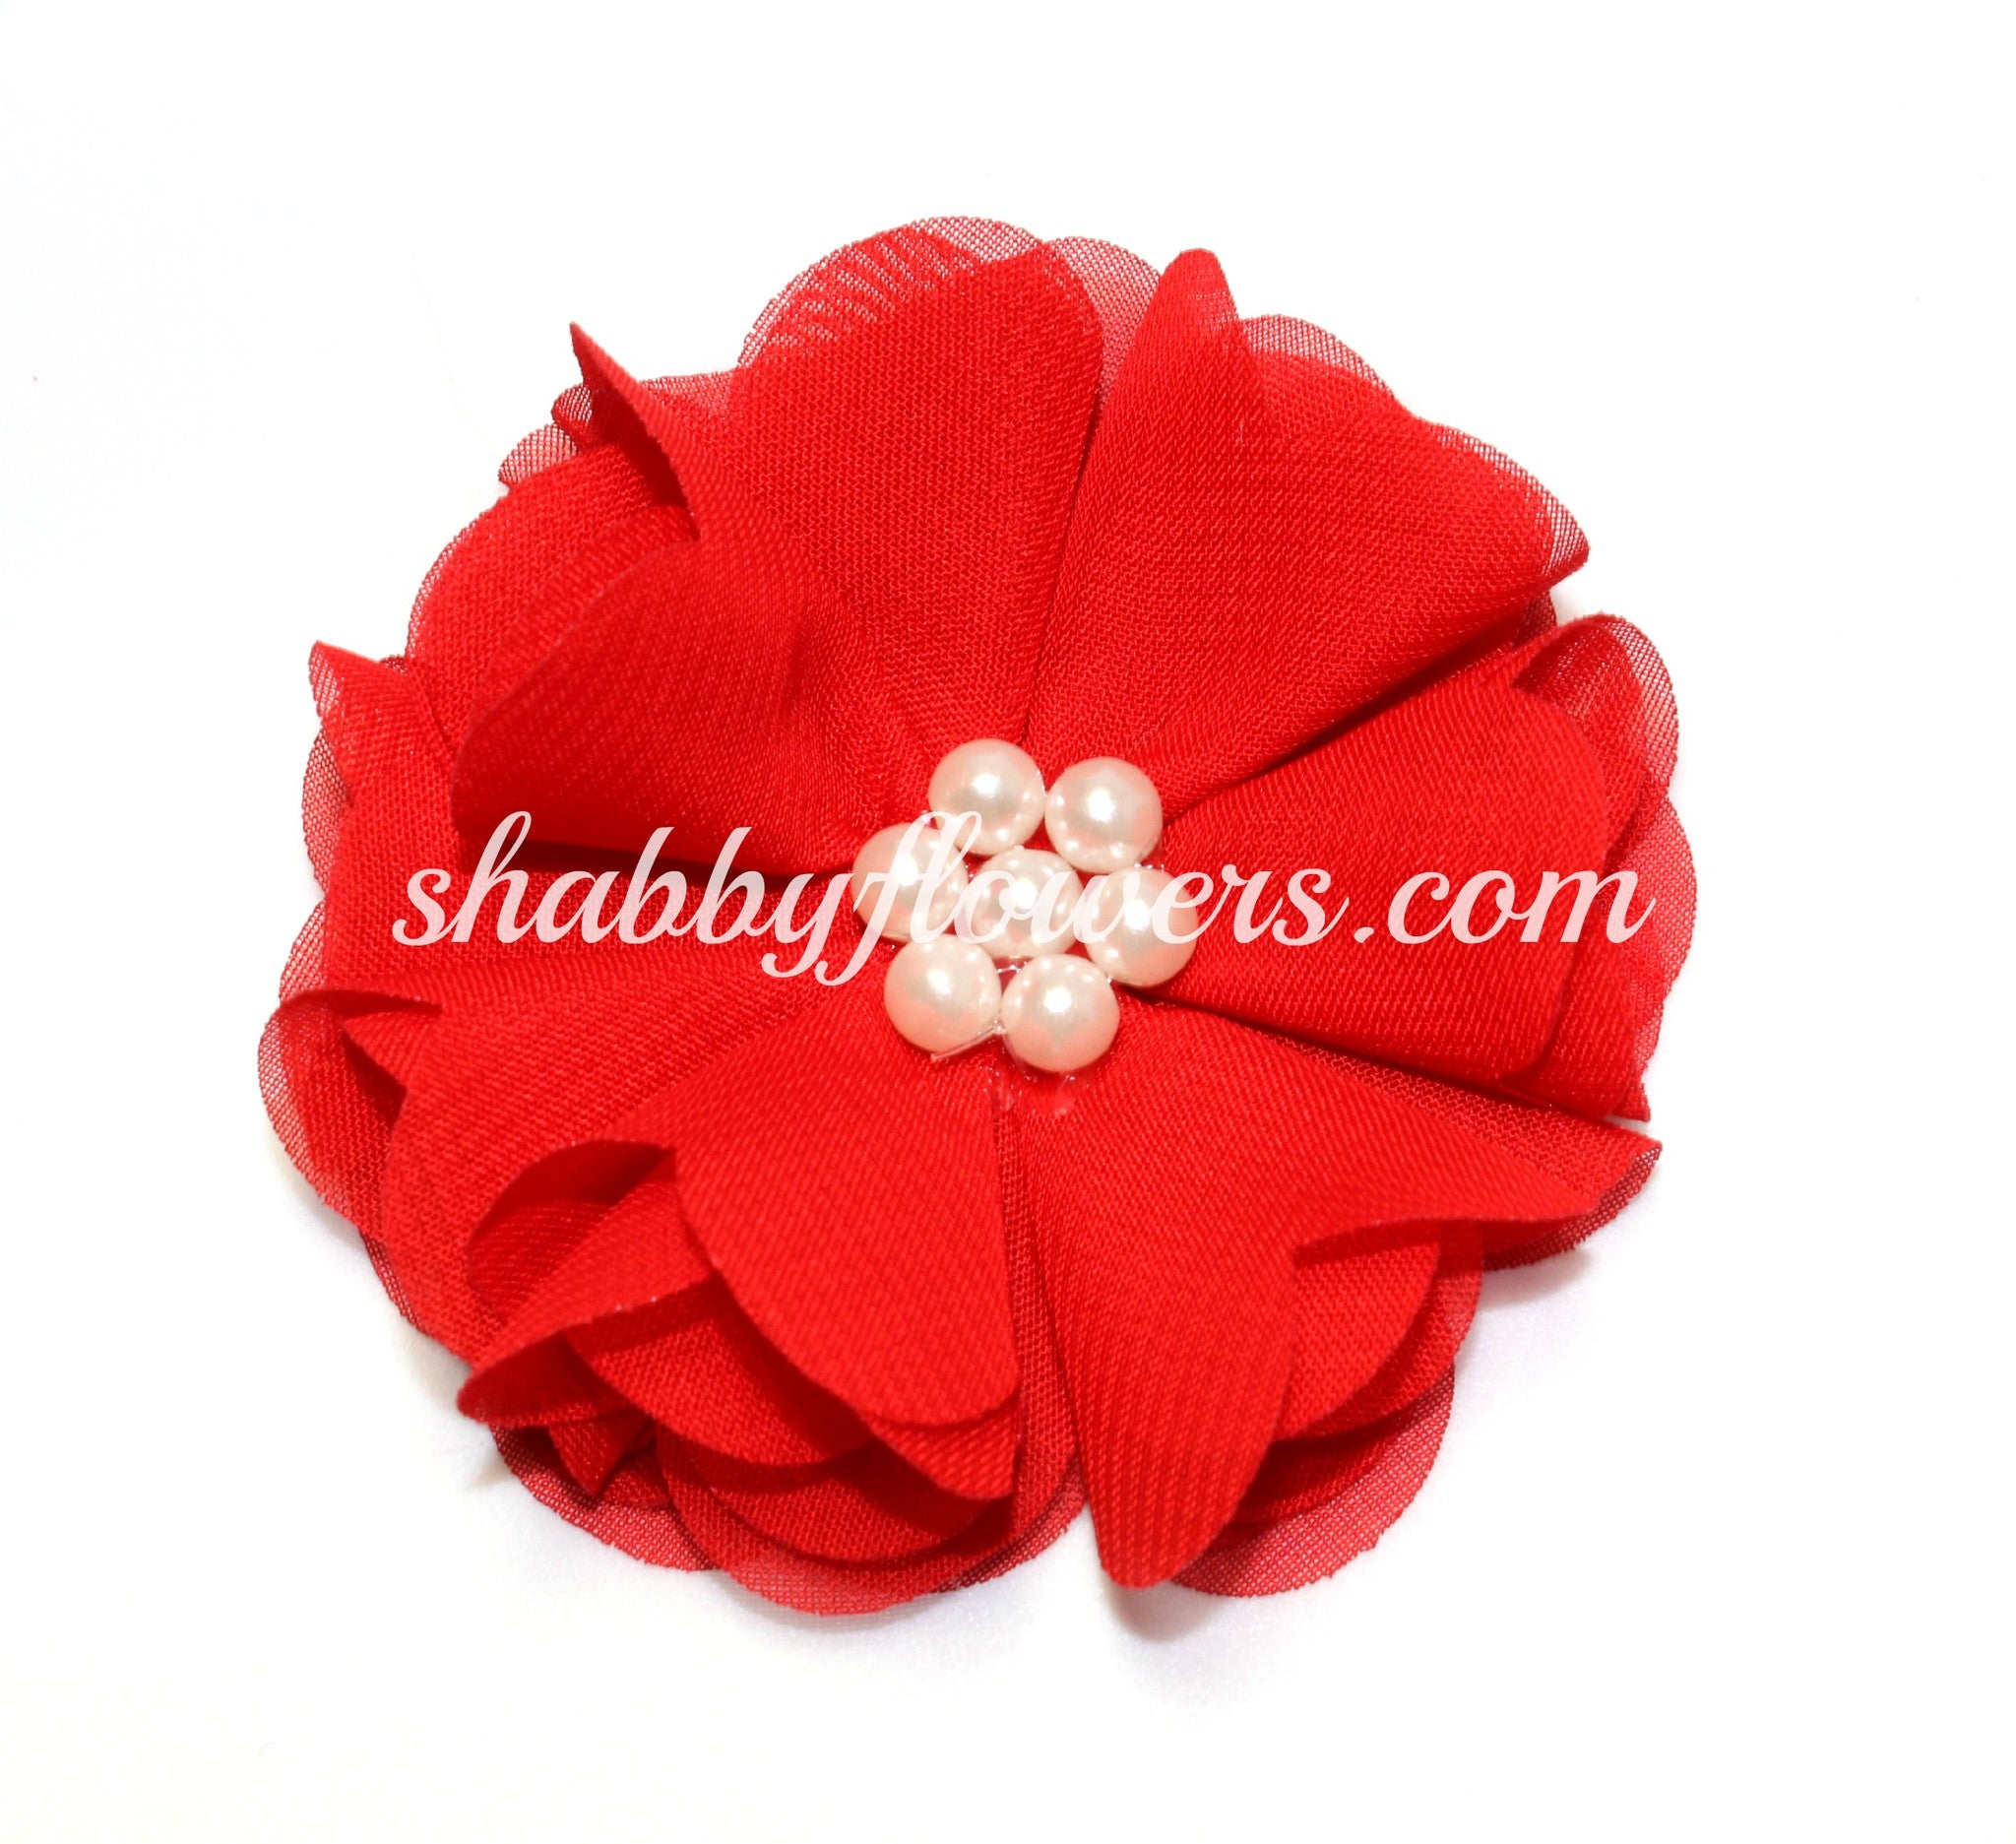 Chiffon Pearl Flower - Red - shabbyflowers.com